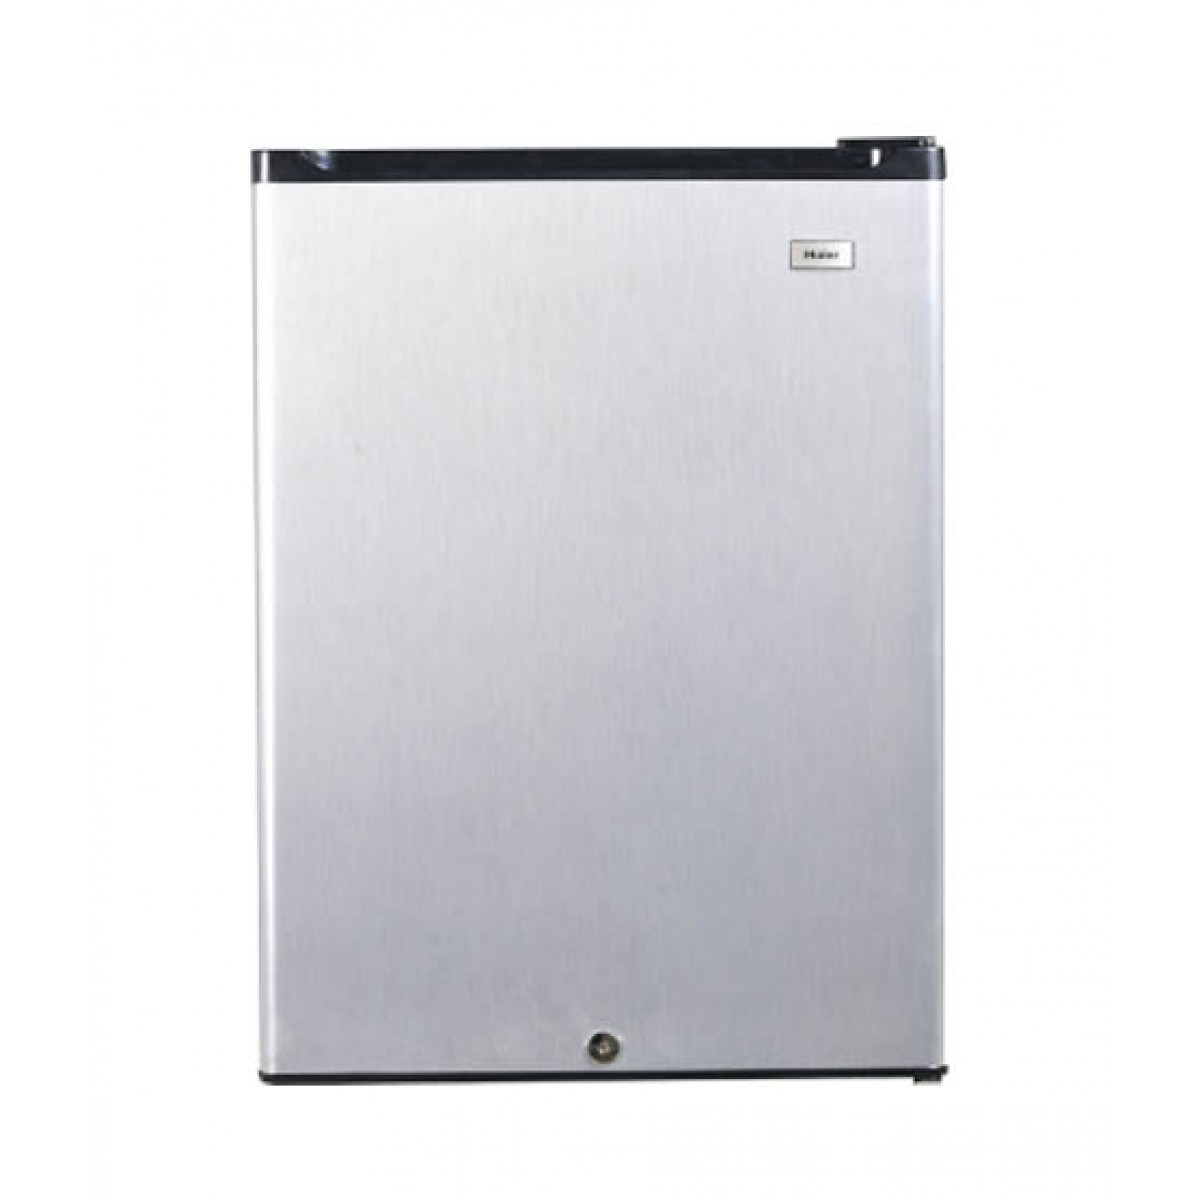 Haier Compact Refrigerator Price In Pakistan Buy Haier Compact